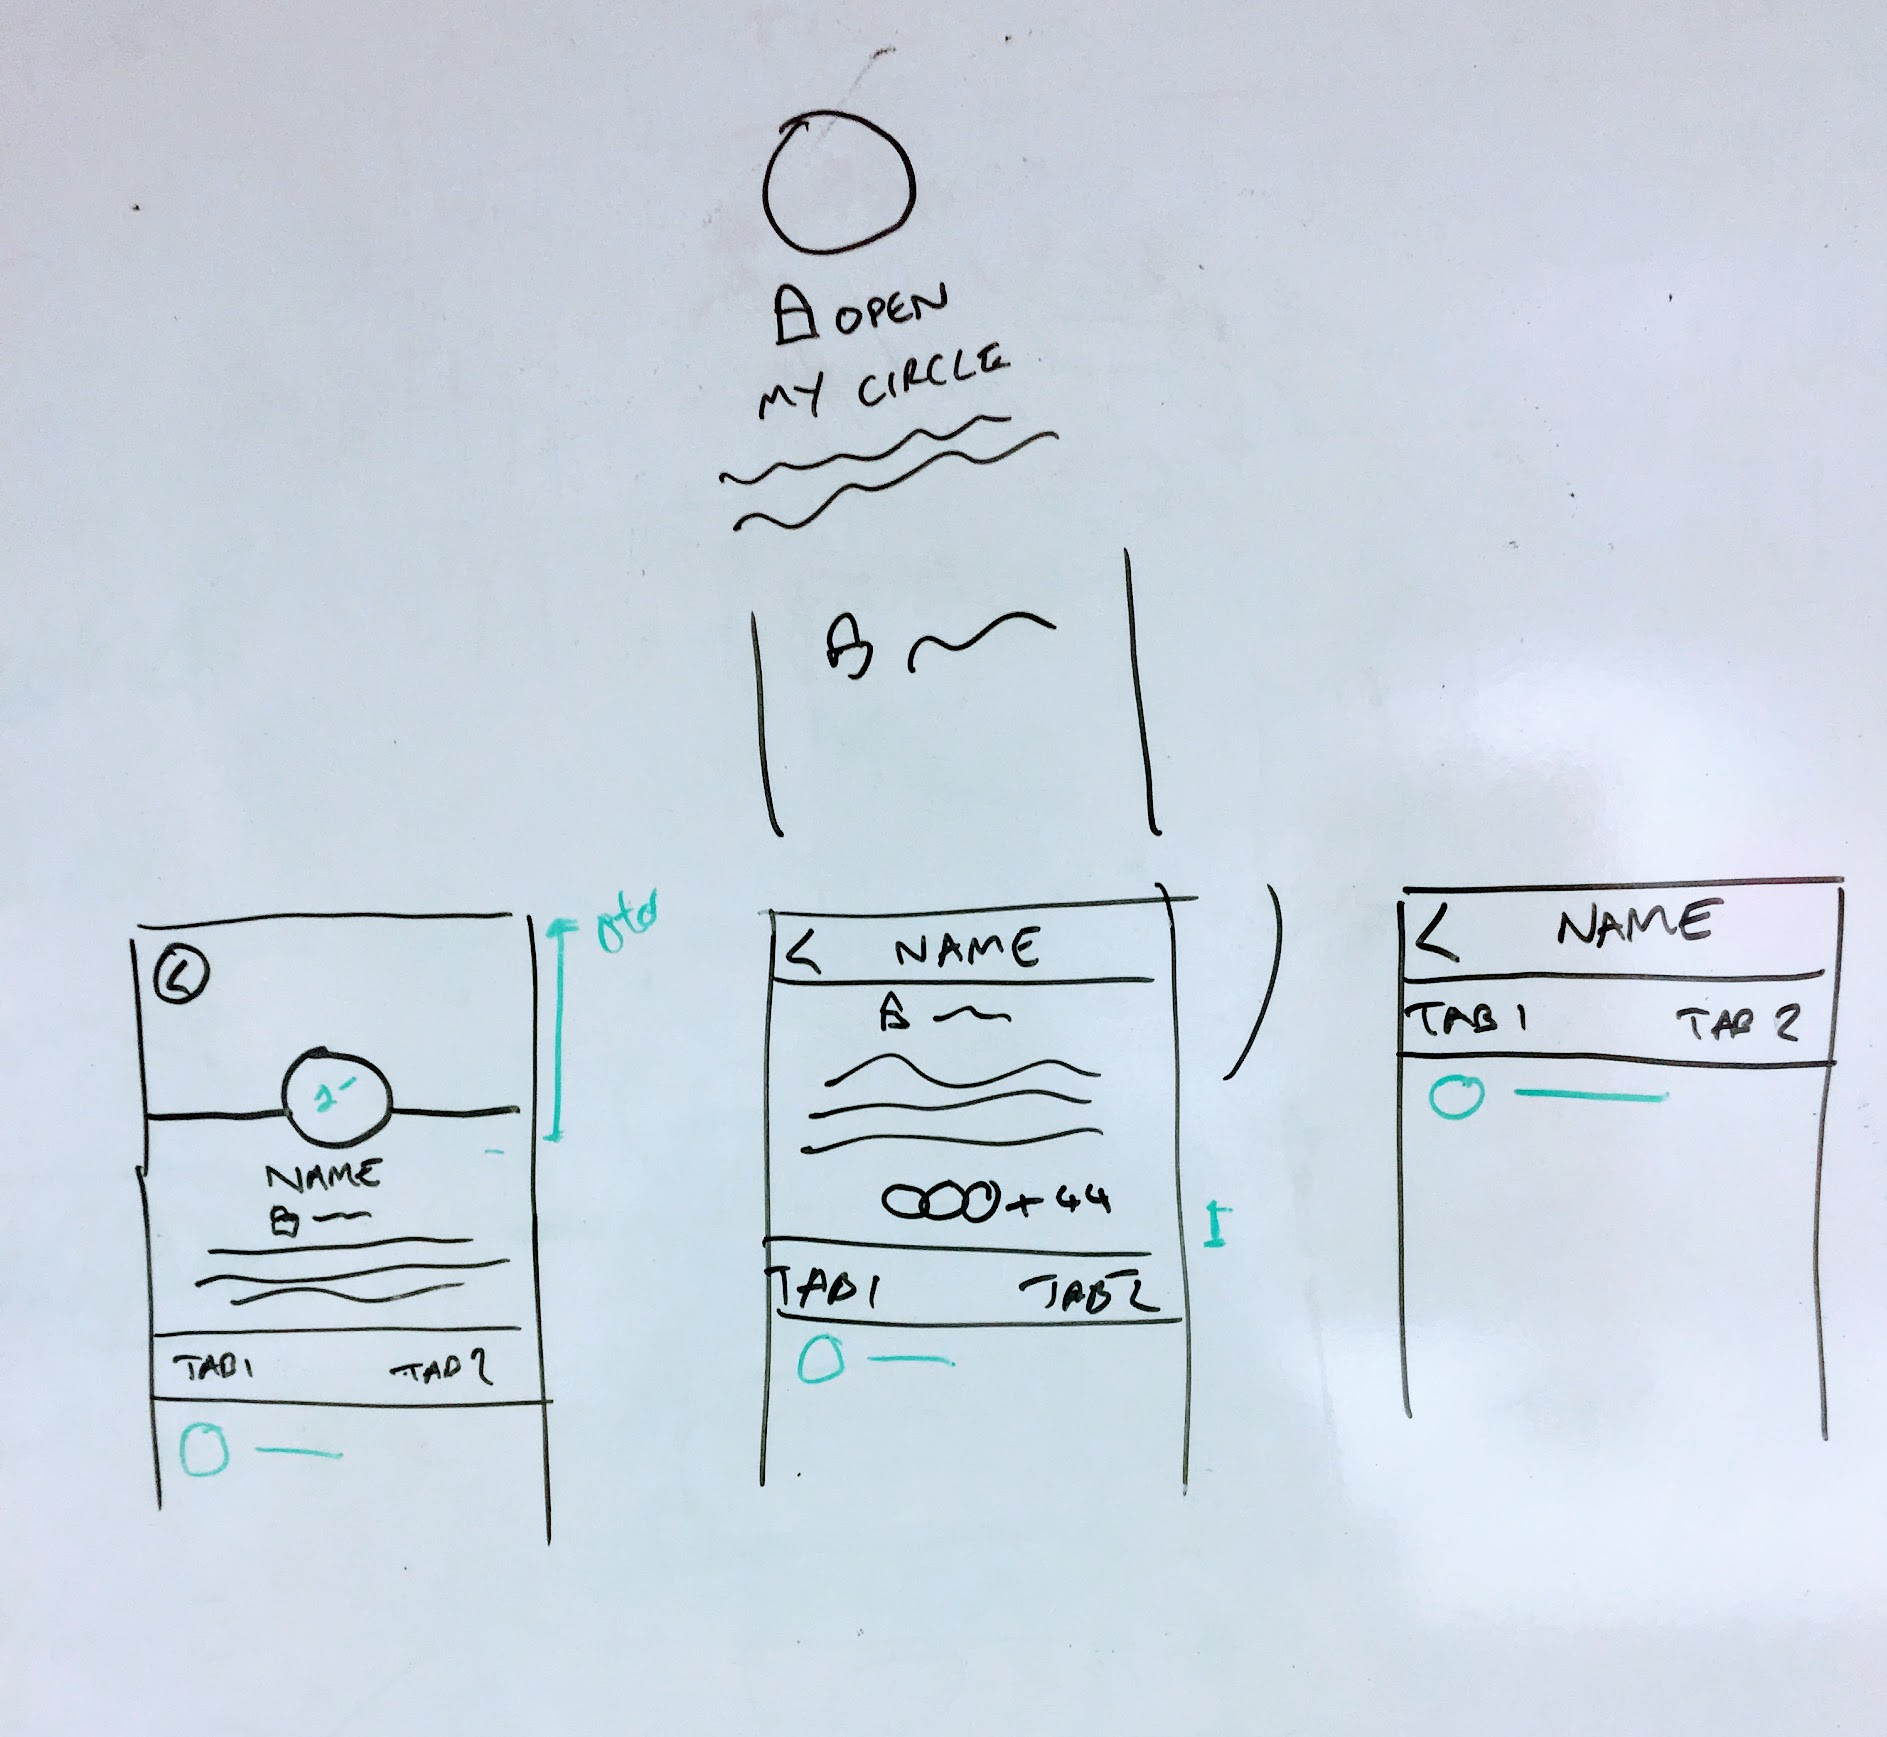 Animation/Interaction - I worked closely with the iOS engineer to demonstrate how content would react when scrolling down on a circle detail page, staying lean by merely sketching the examples on a whiteboard and talking through the challenges.It was important to get this interaction correct as I wanted to re-use this paradigm in further sections of the app to maintain consistency.